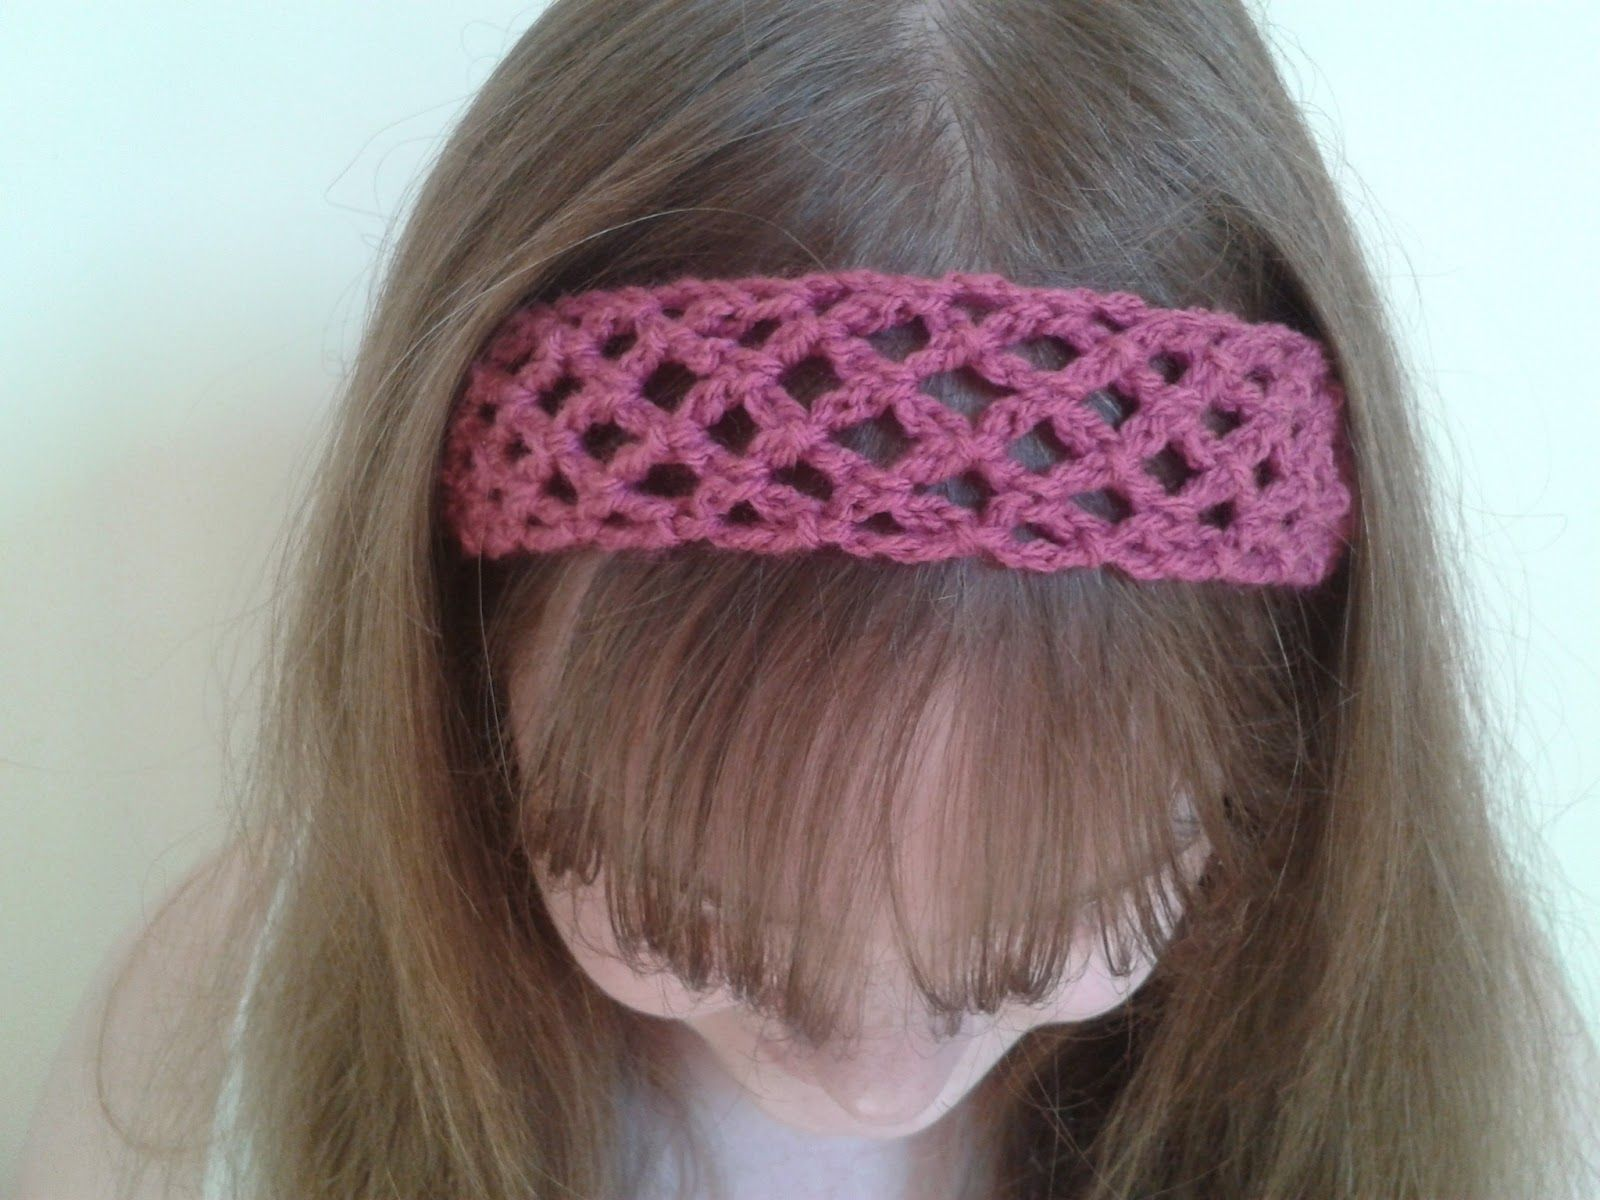 Crochet patterns articles ebooks magazines videos crocheted crochet patterns articles ebooks magazines videos crocheted headbands crochet lace and crochet dt1010fo